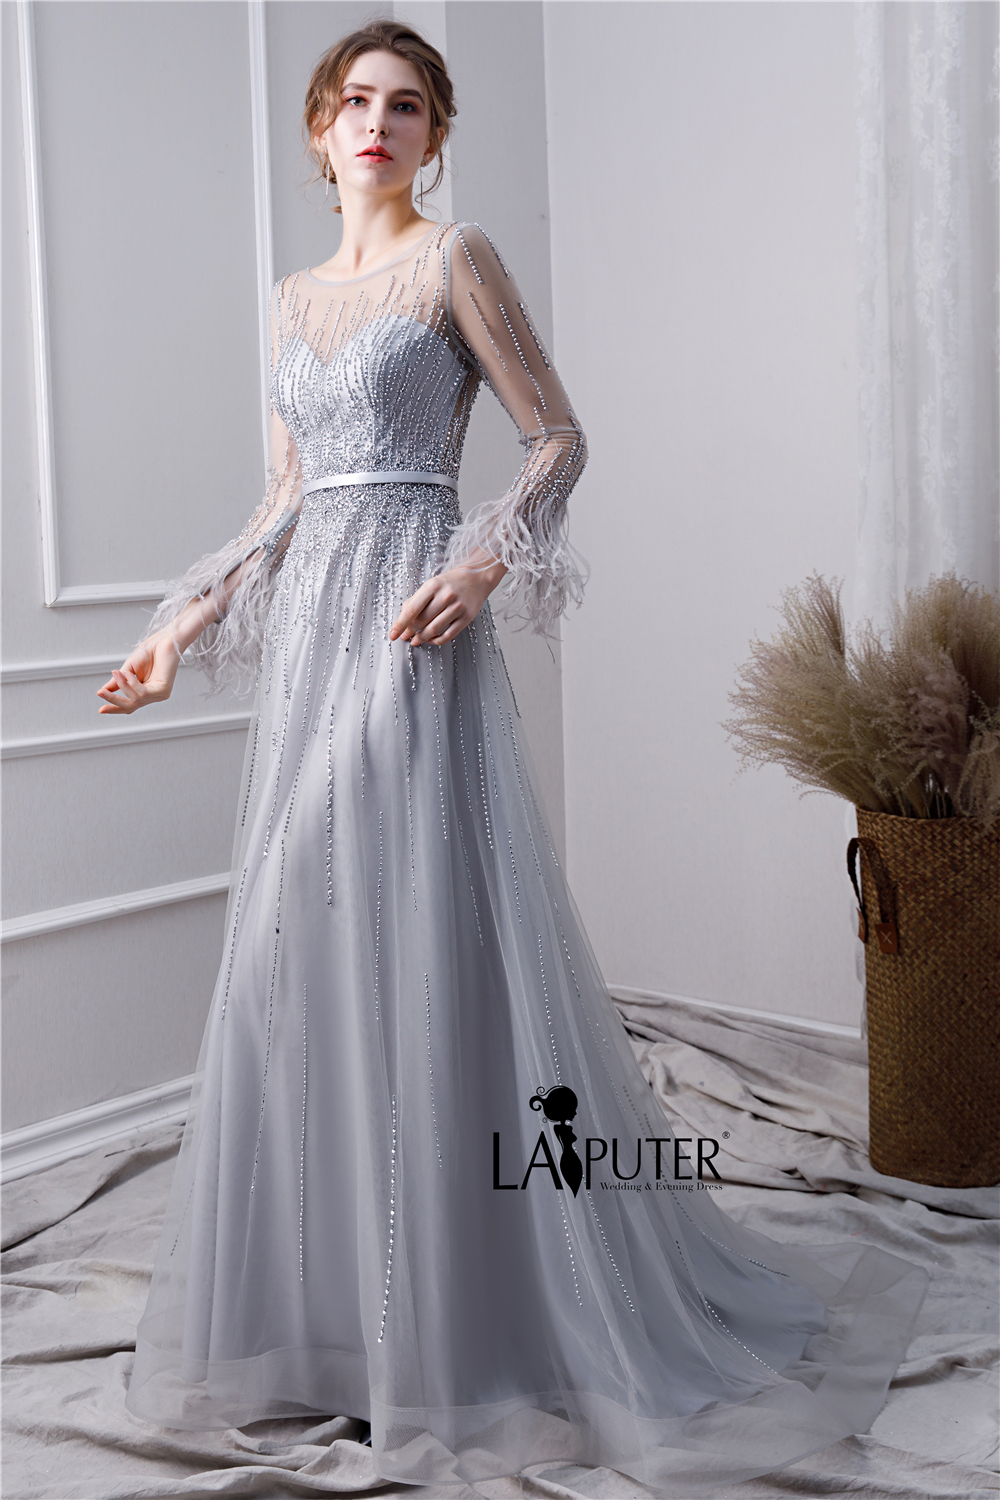 d70c79b14e2b1 LAIPUTER 2019 New Arrival Luxury Beading Prom Dress Silver A line ...